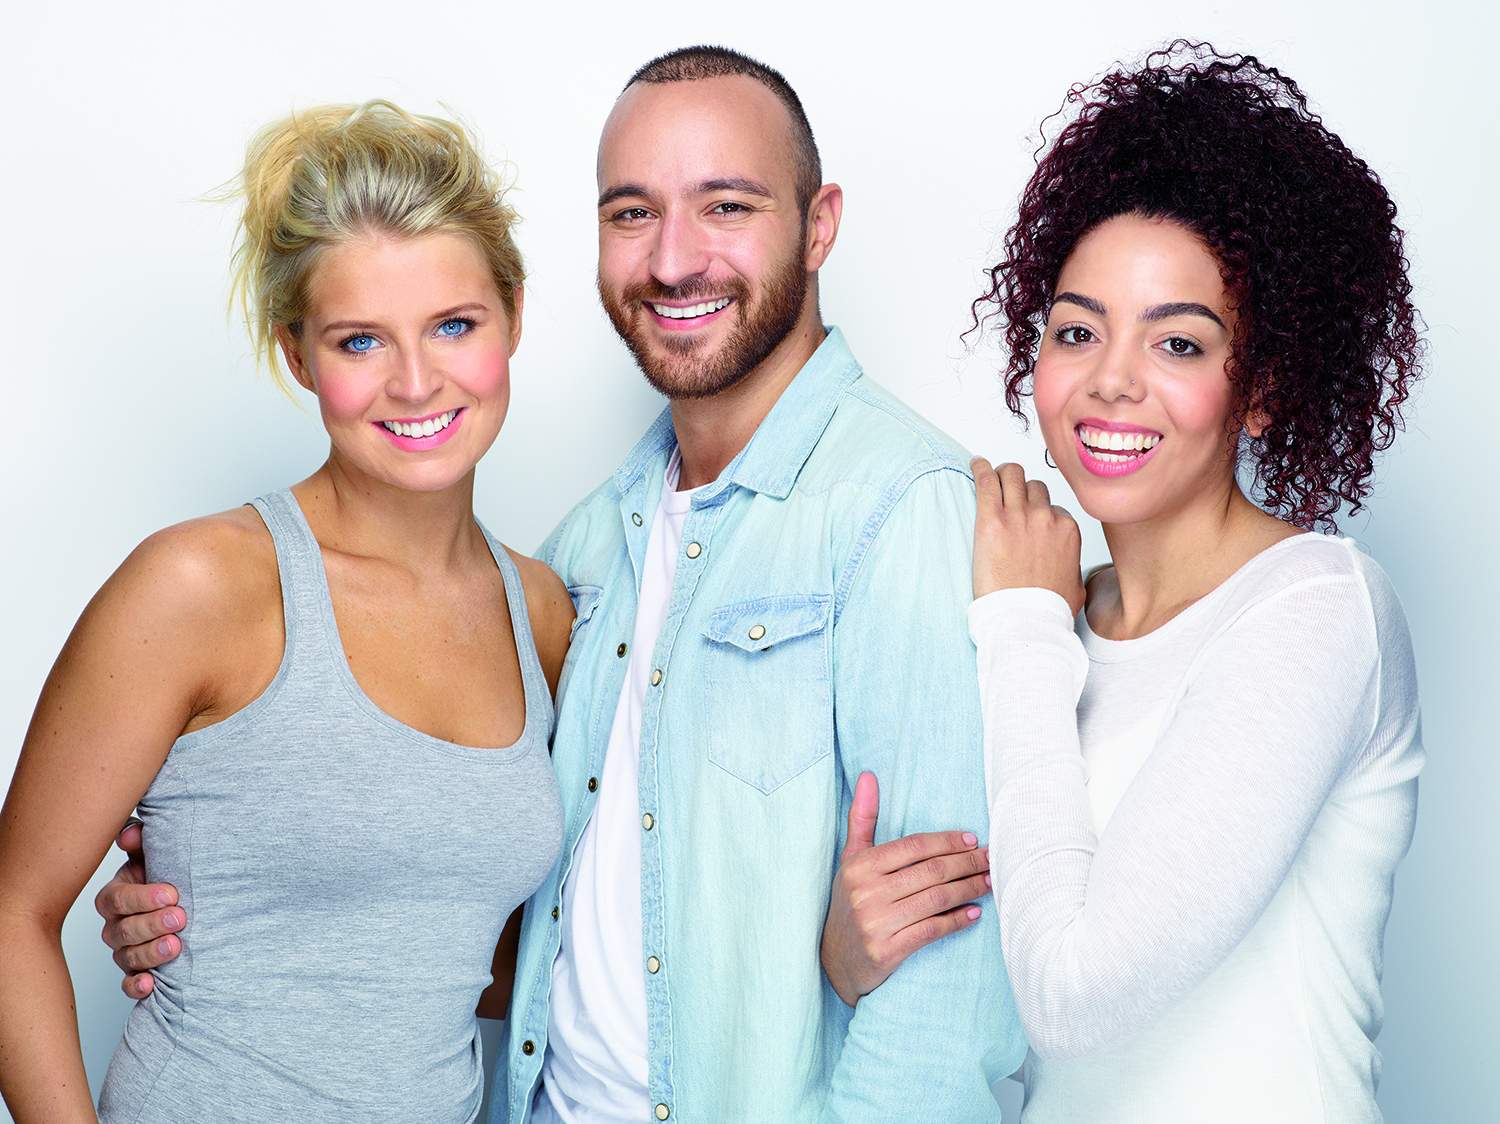 Group of Adults with Invisalign